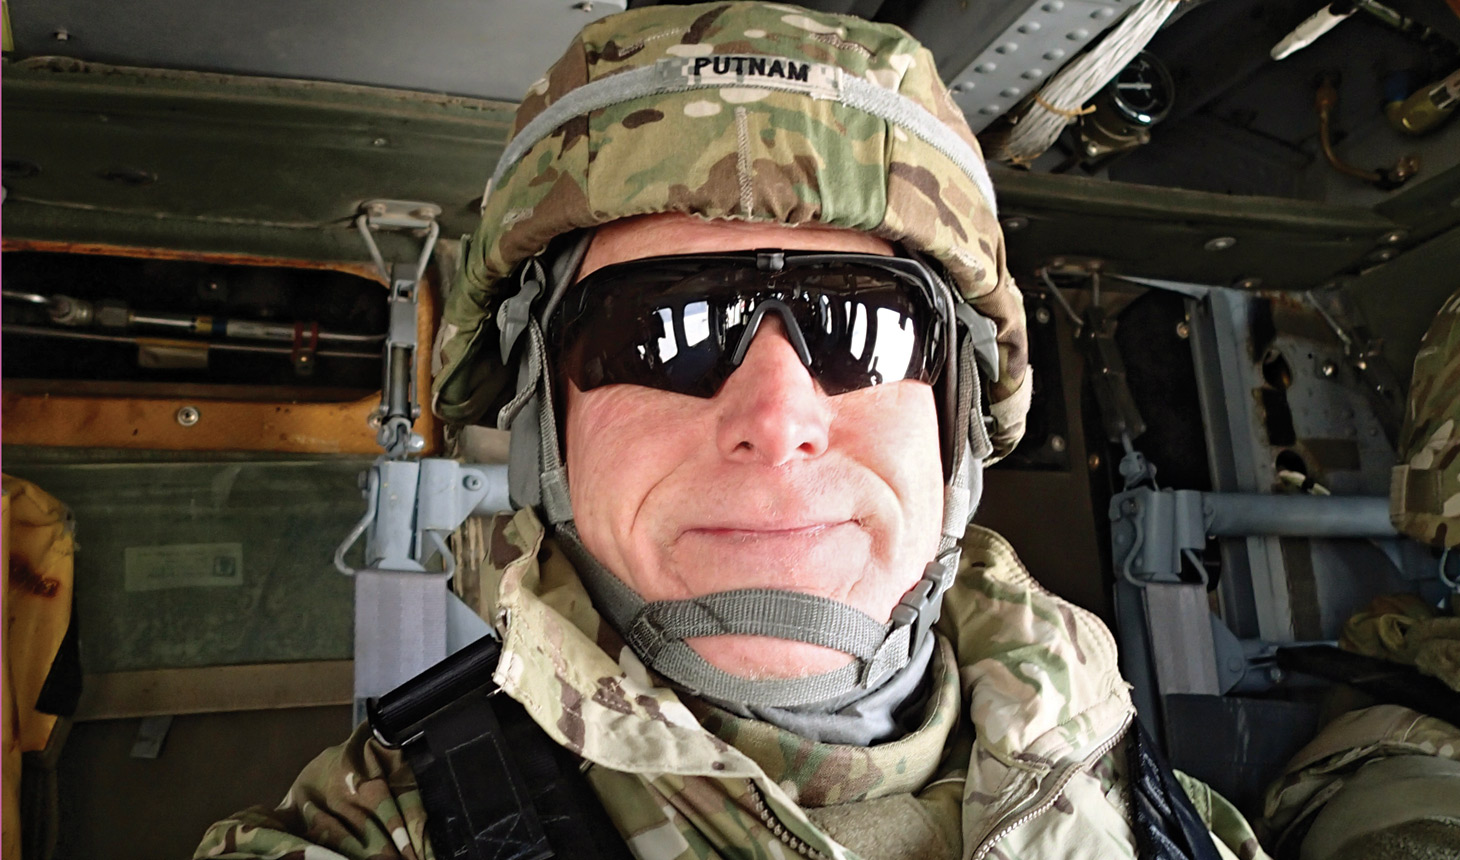 Matthew Putnam on a helicopter during his time with a forward surgical team in Afghanistan.